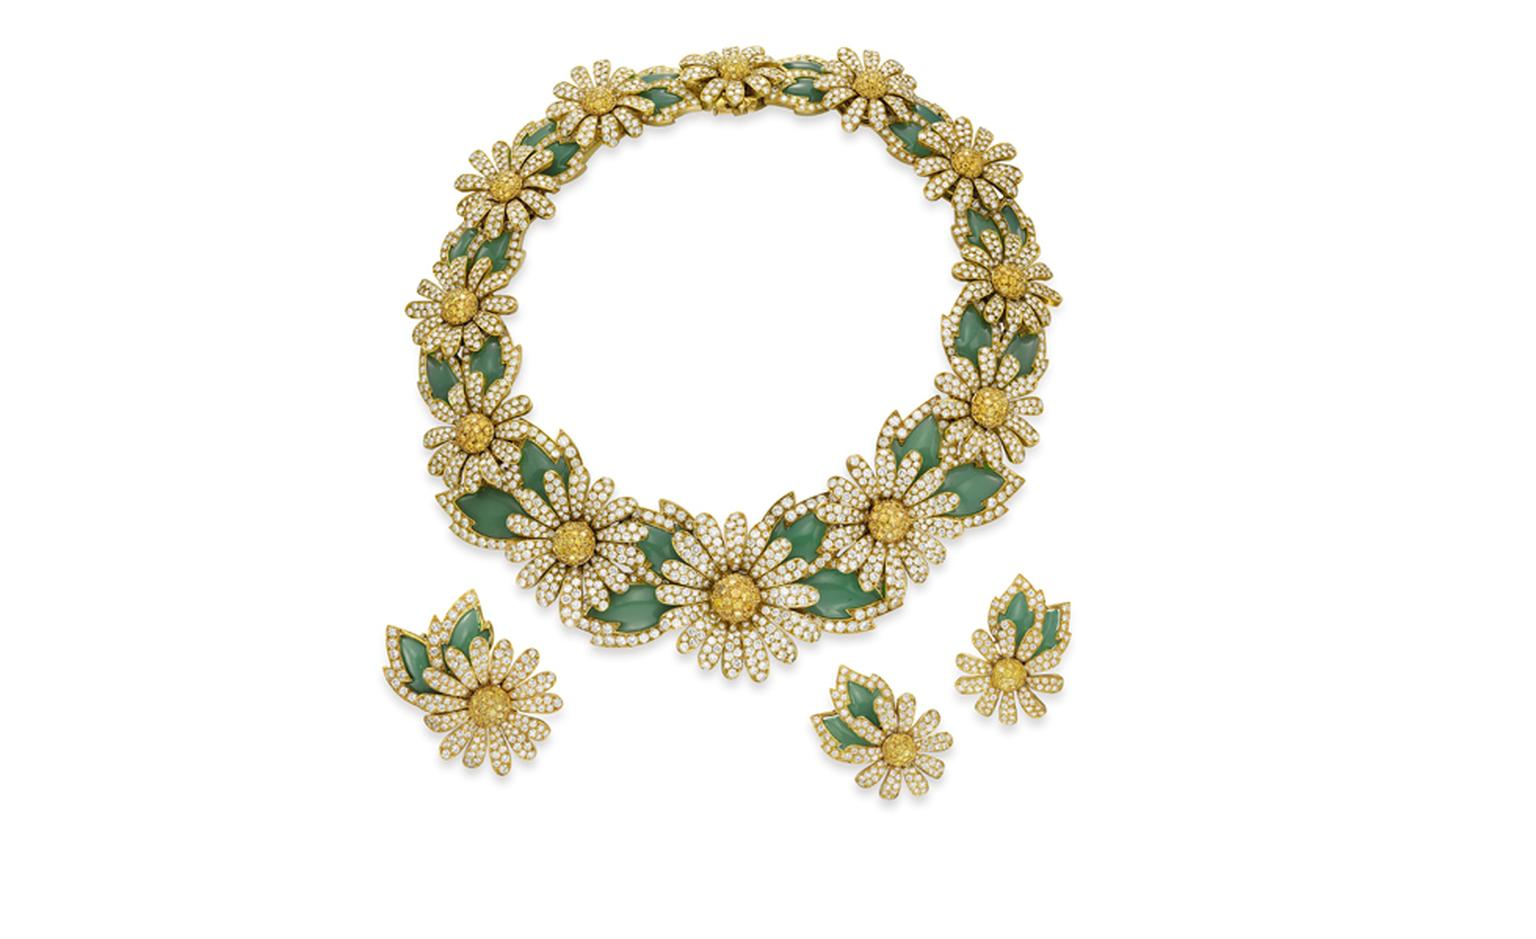 Van Cleef & Arpels. Reine Marguerite White and Yellow Diamond, Chrysoprase and Yellow Gold Necklace, Brooch and ear clips (1990 – 1993). © Christie's Images 2011. POA.